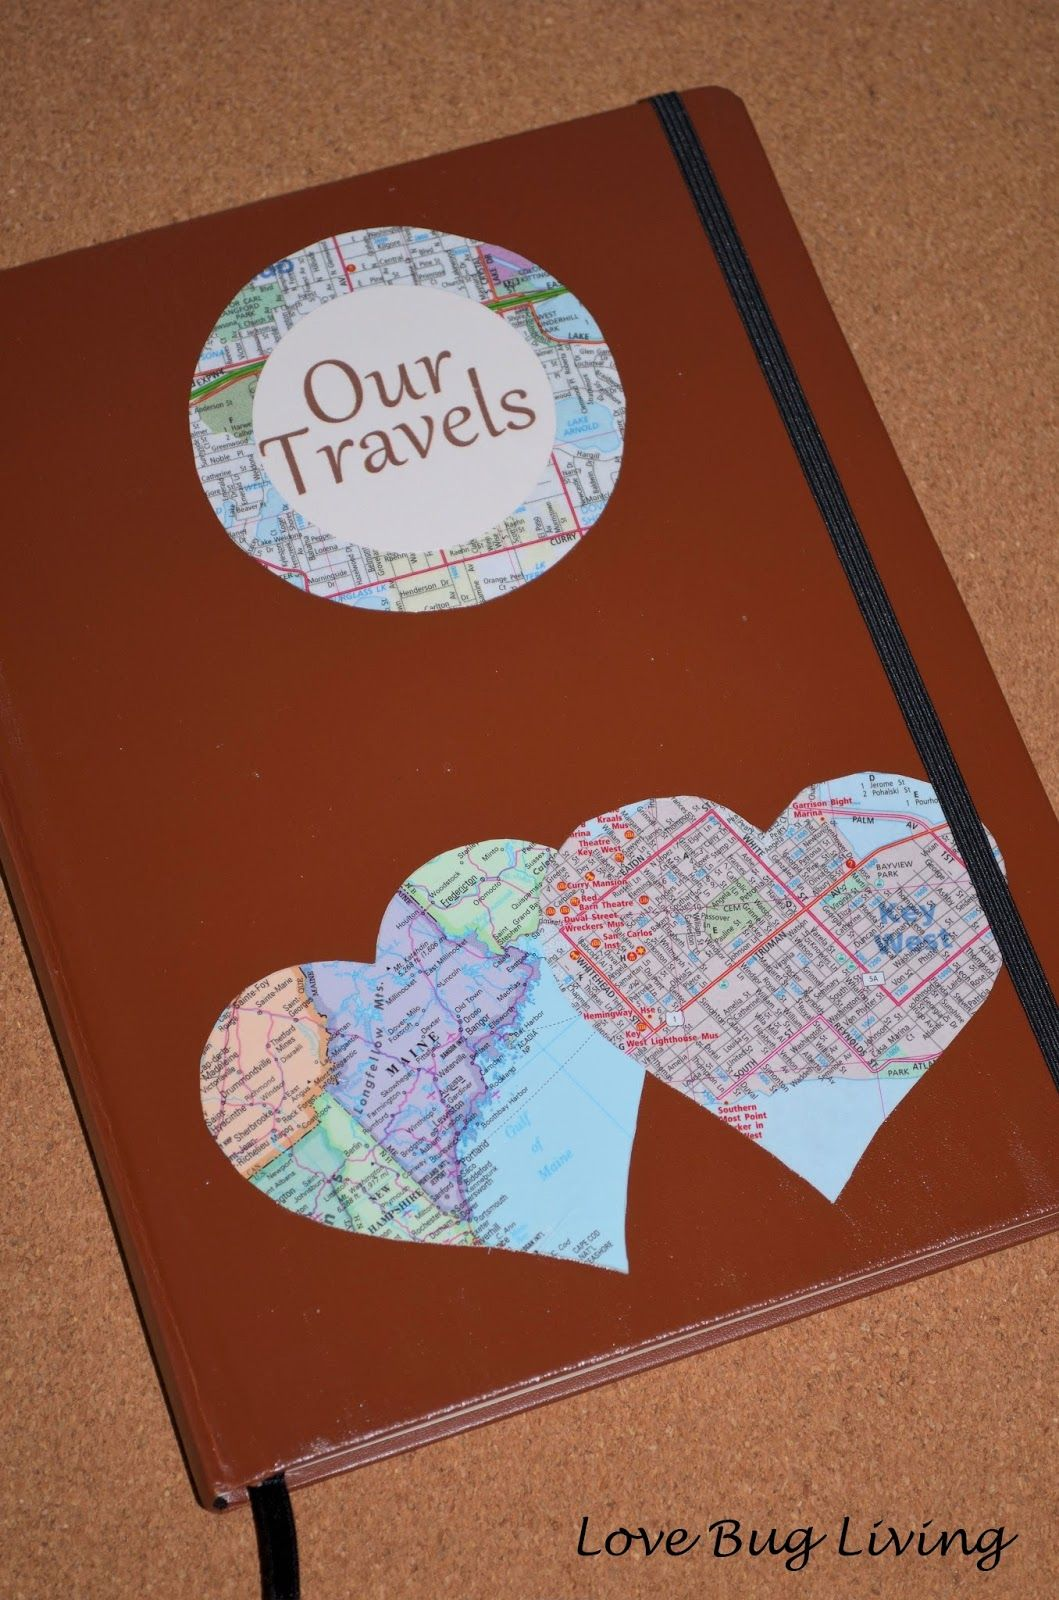 Love Bug Living Honeymoon Travel Journal Gift Great Wedding For The Newlyweds That Like To